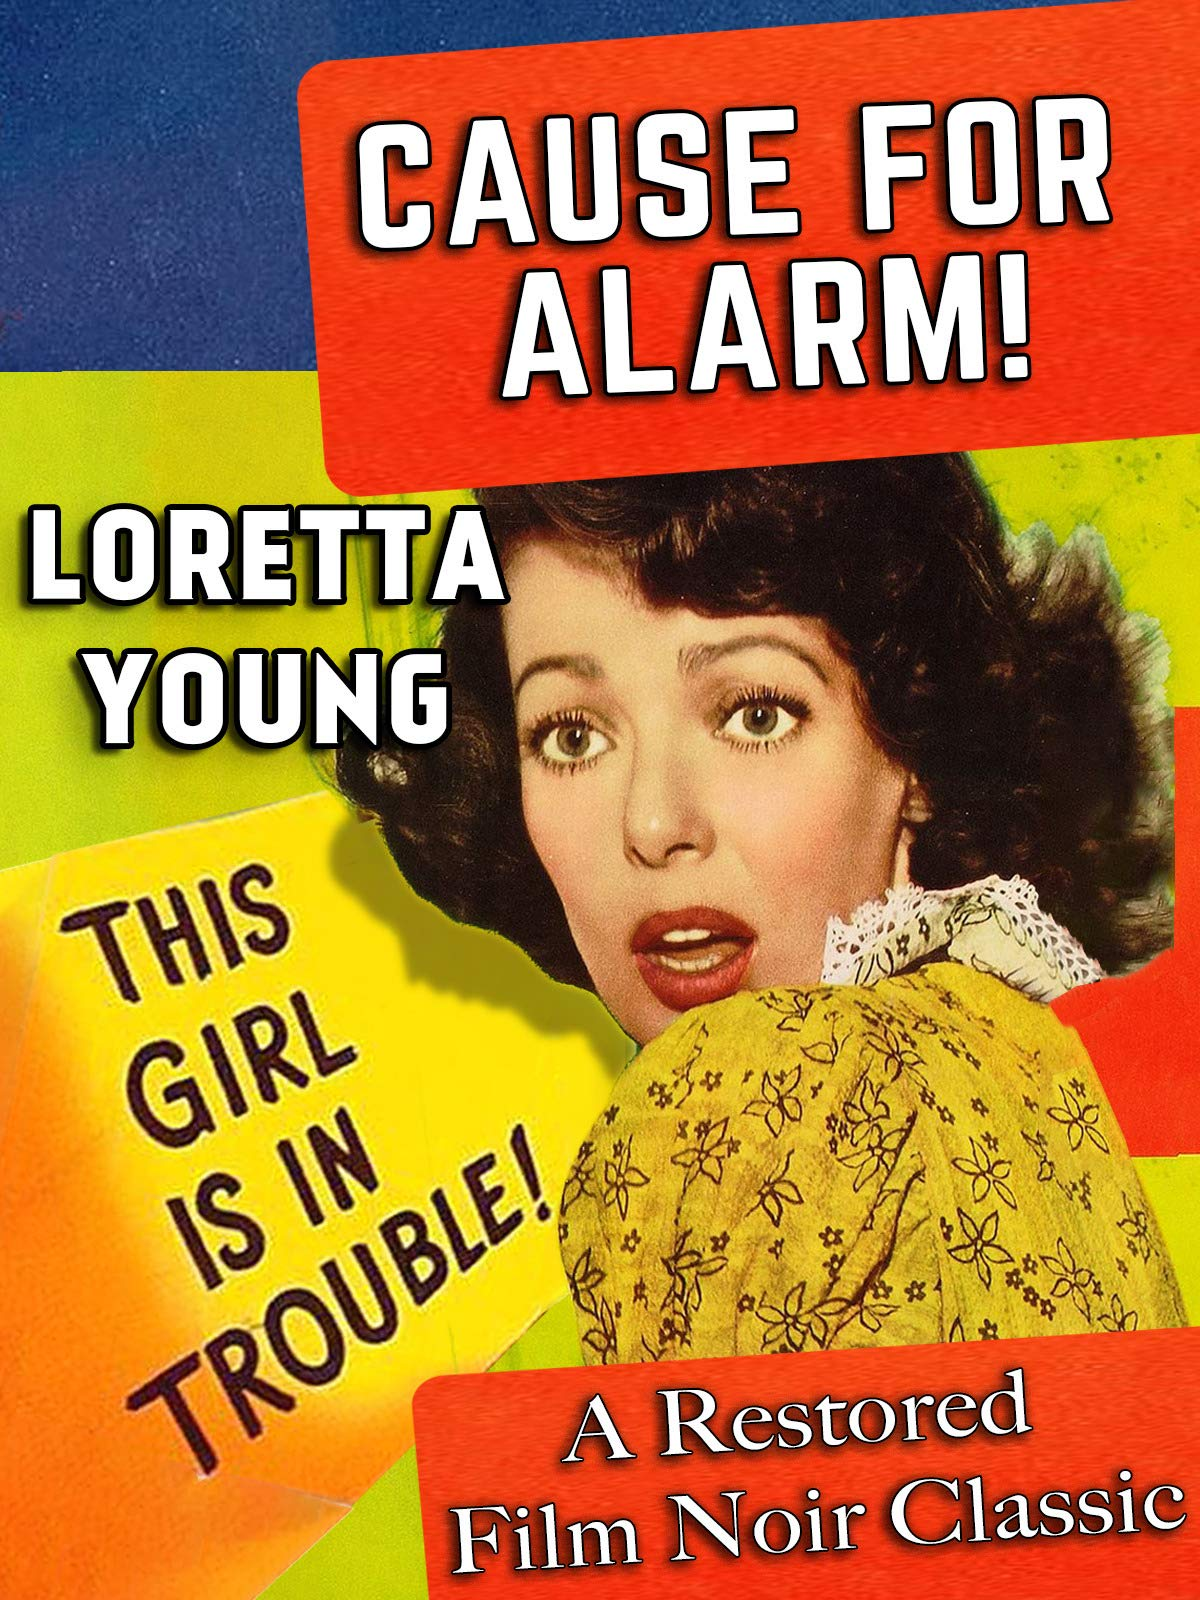 Loretta Young In Cause For Alarm! - A Restored Film Noir Classic on Amazon Prime Video UK